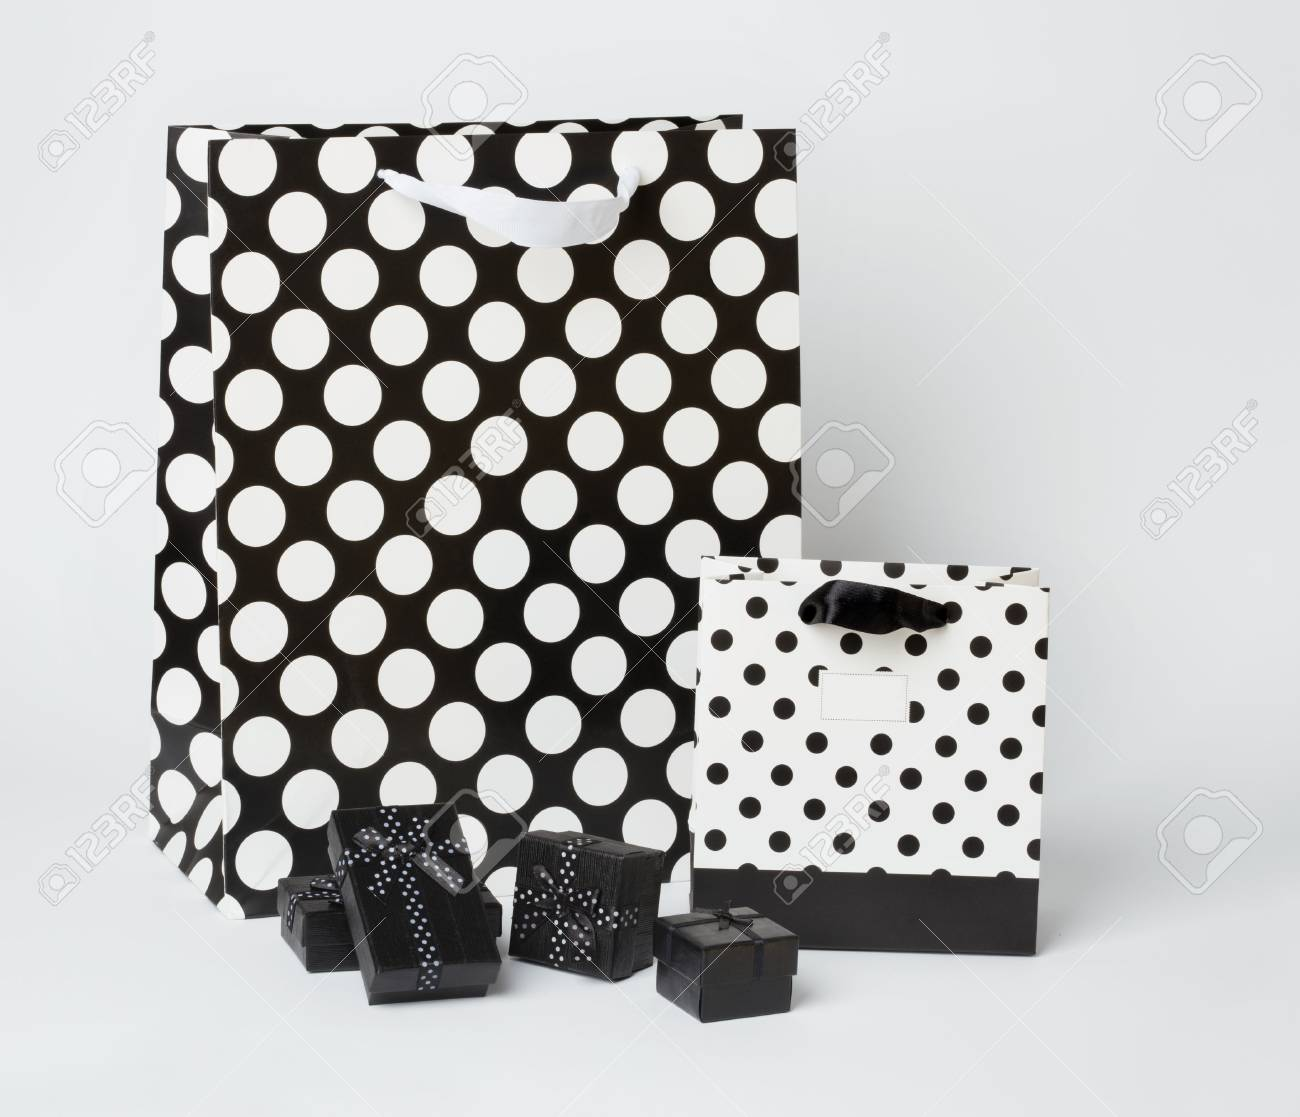 Small Black Gift Boxes With Black And White Gift Bags With Polka